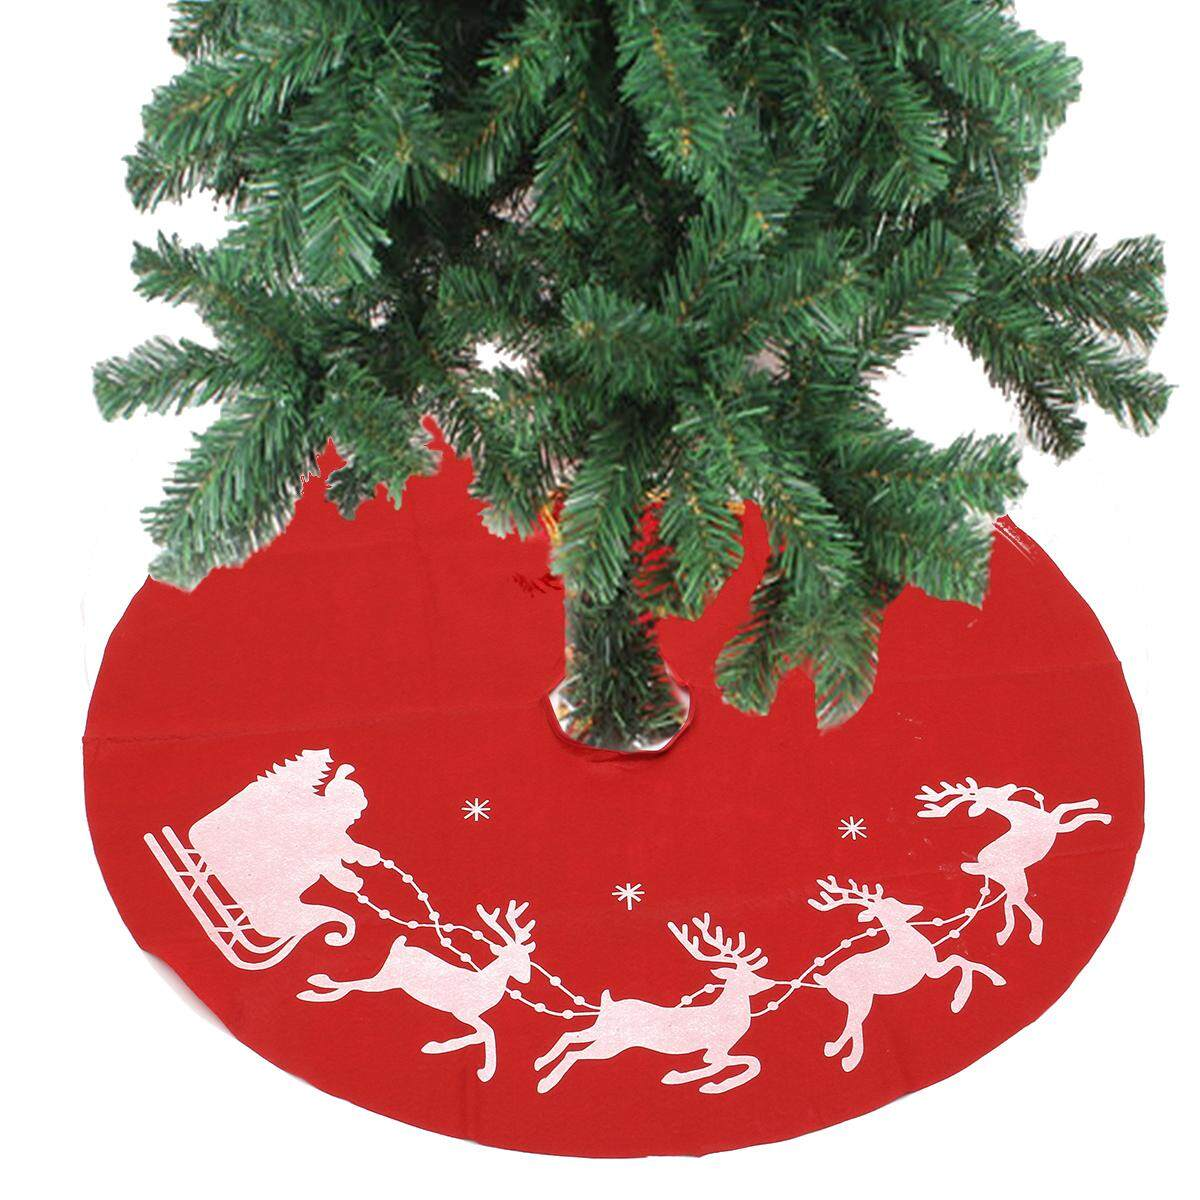 100cm Red Christmas Tree Skirt Santa Claus Tree Skirt Christmas Decoration Supplies Ornament By Glimmer.